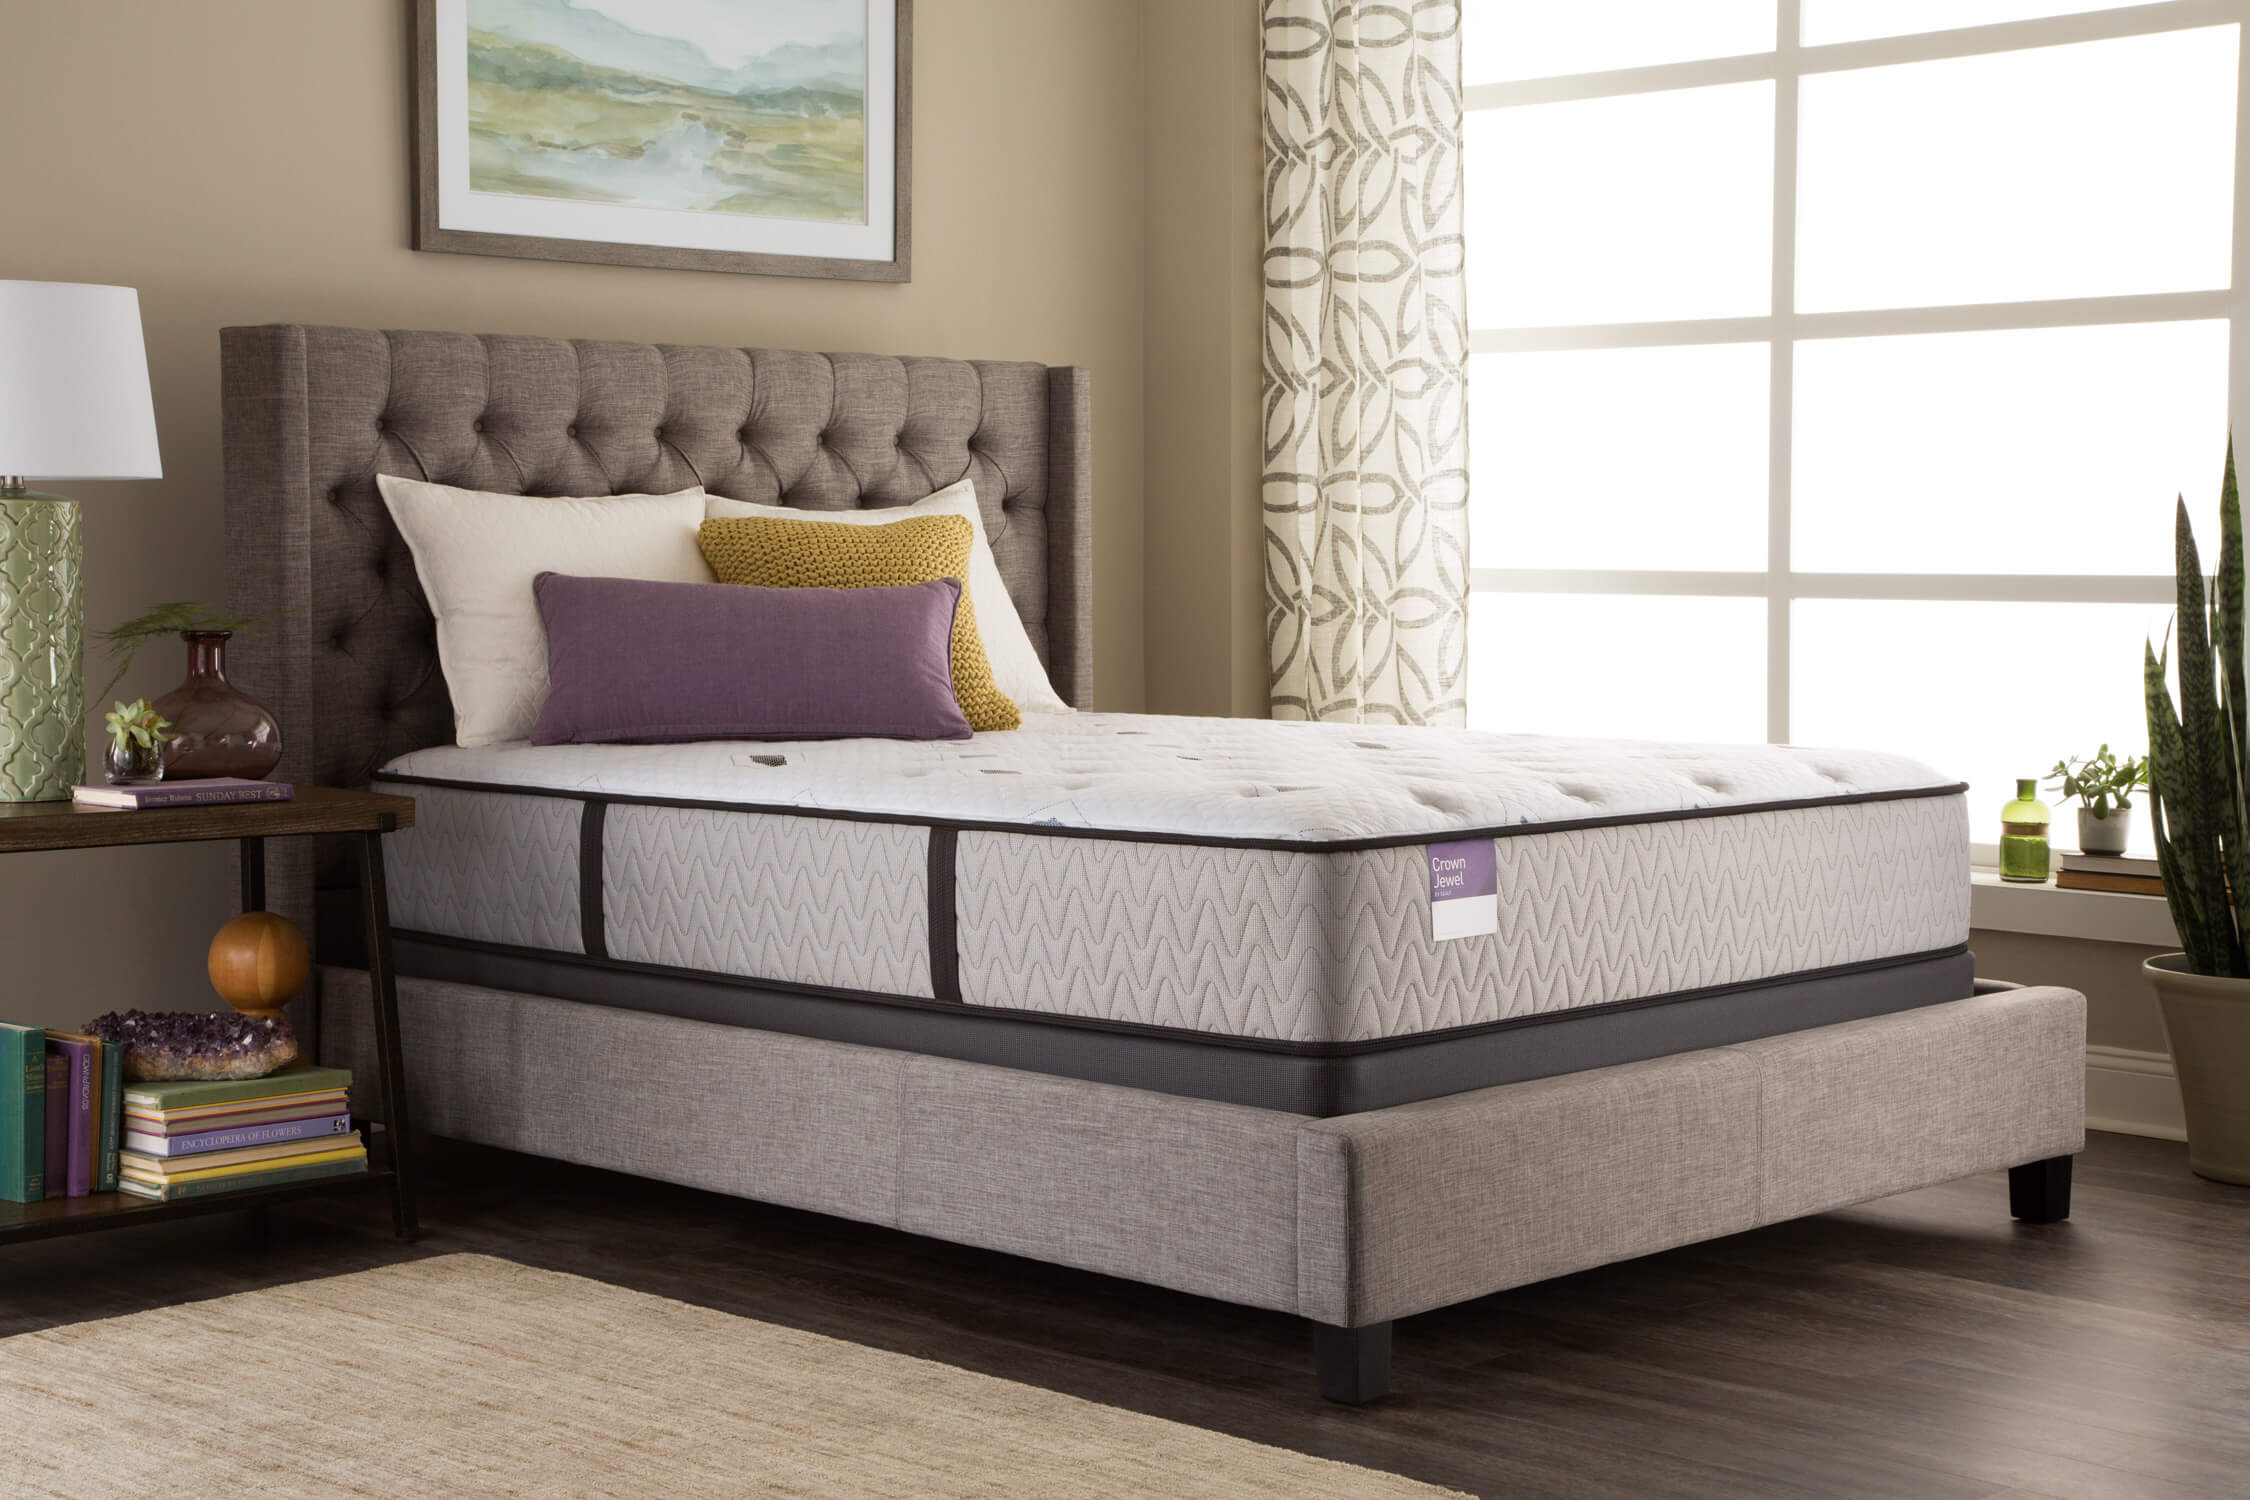 Sealy Black Opal Plush Beds For Less